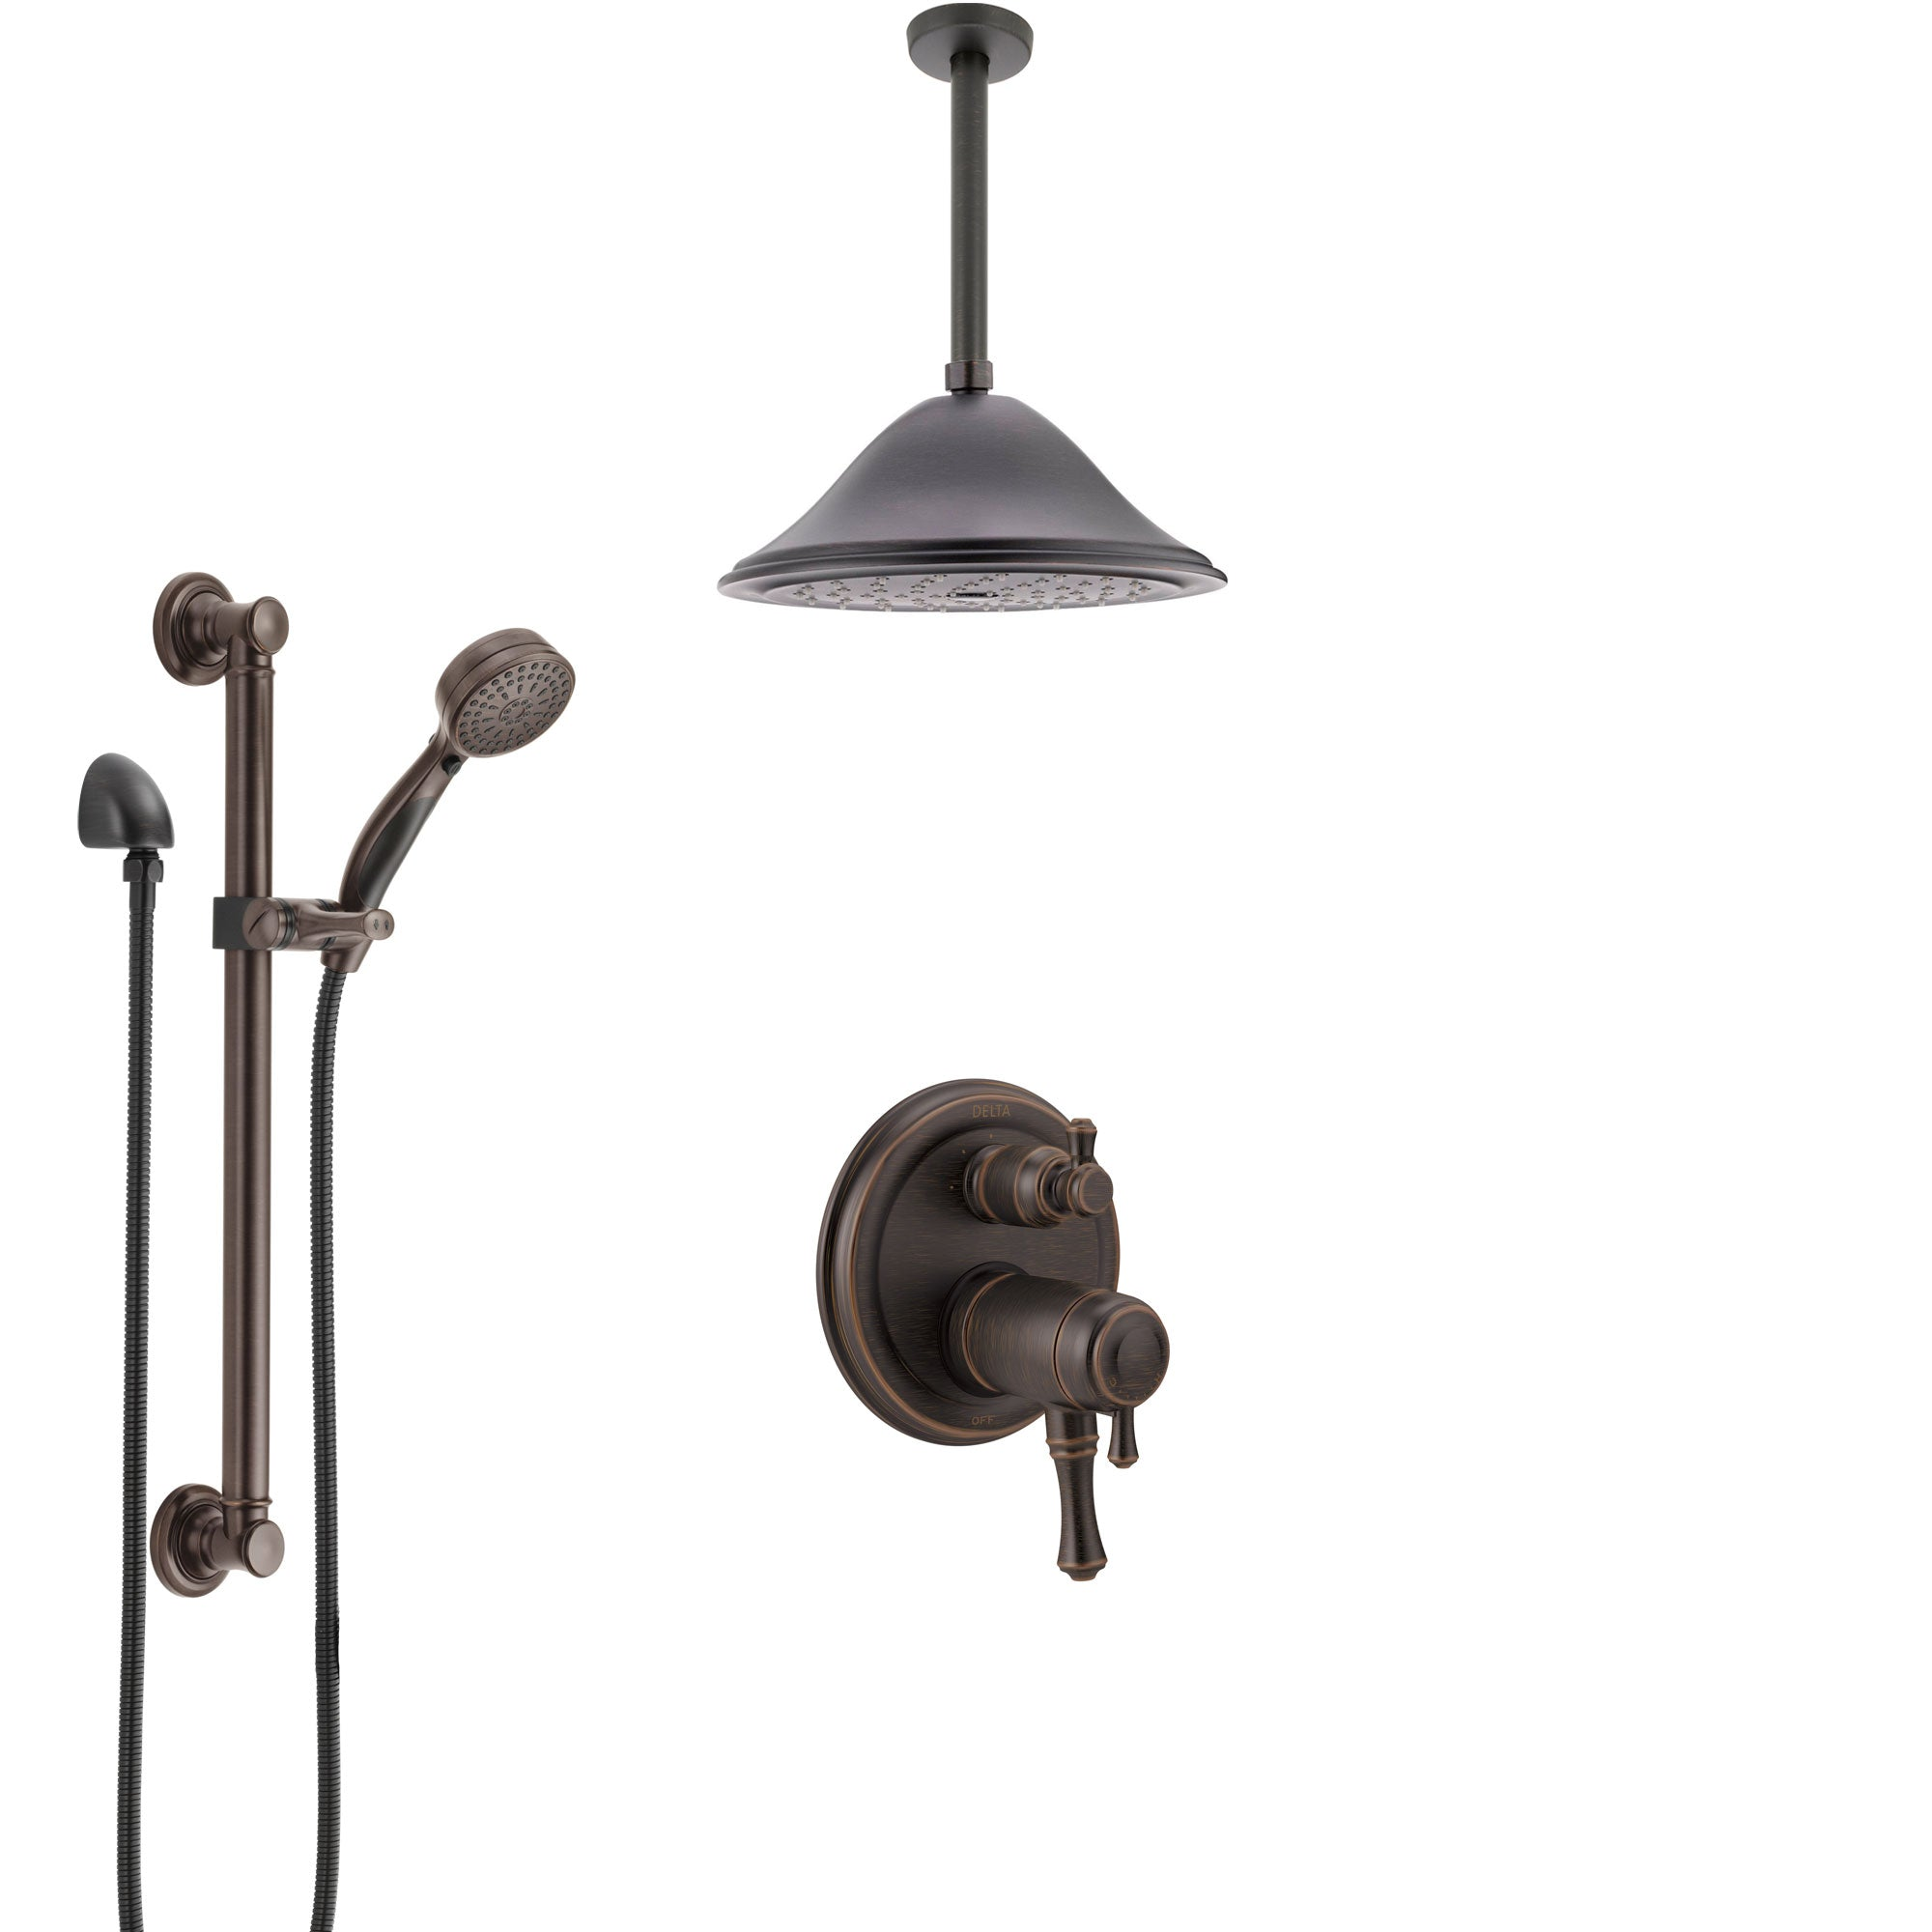 Delta Cassidy Venetian Bronze Integrated Diverter Dual Thermostatic Control Shower System, Ceiling Showerhead, and Grab Bar Hand Spray SS27T897RB1